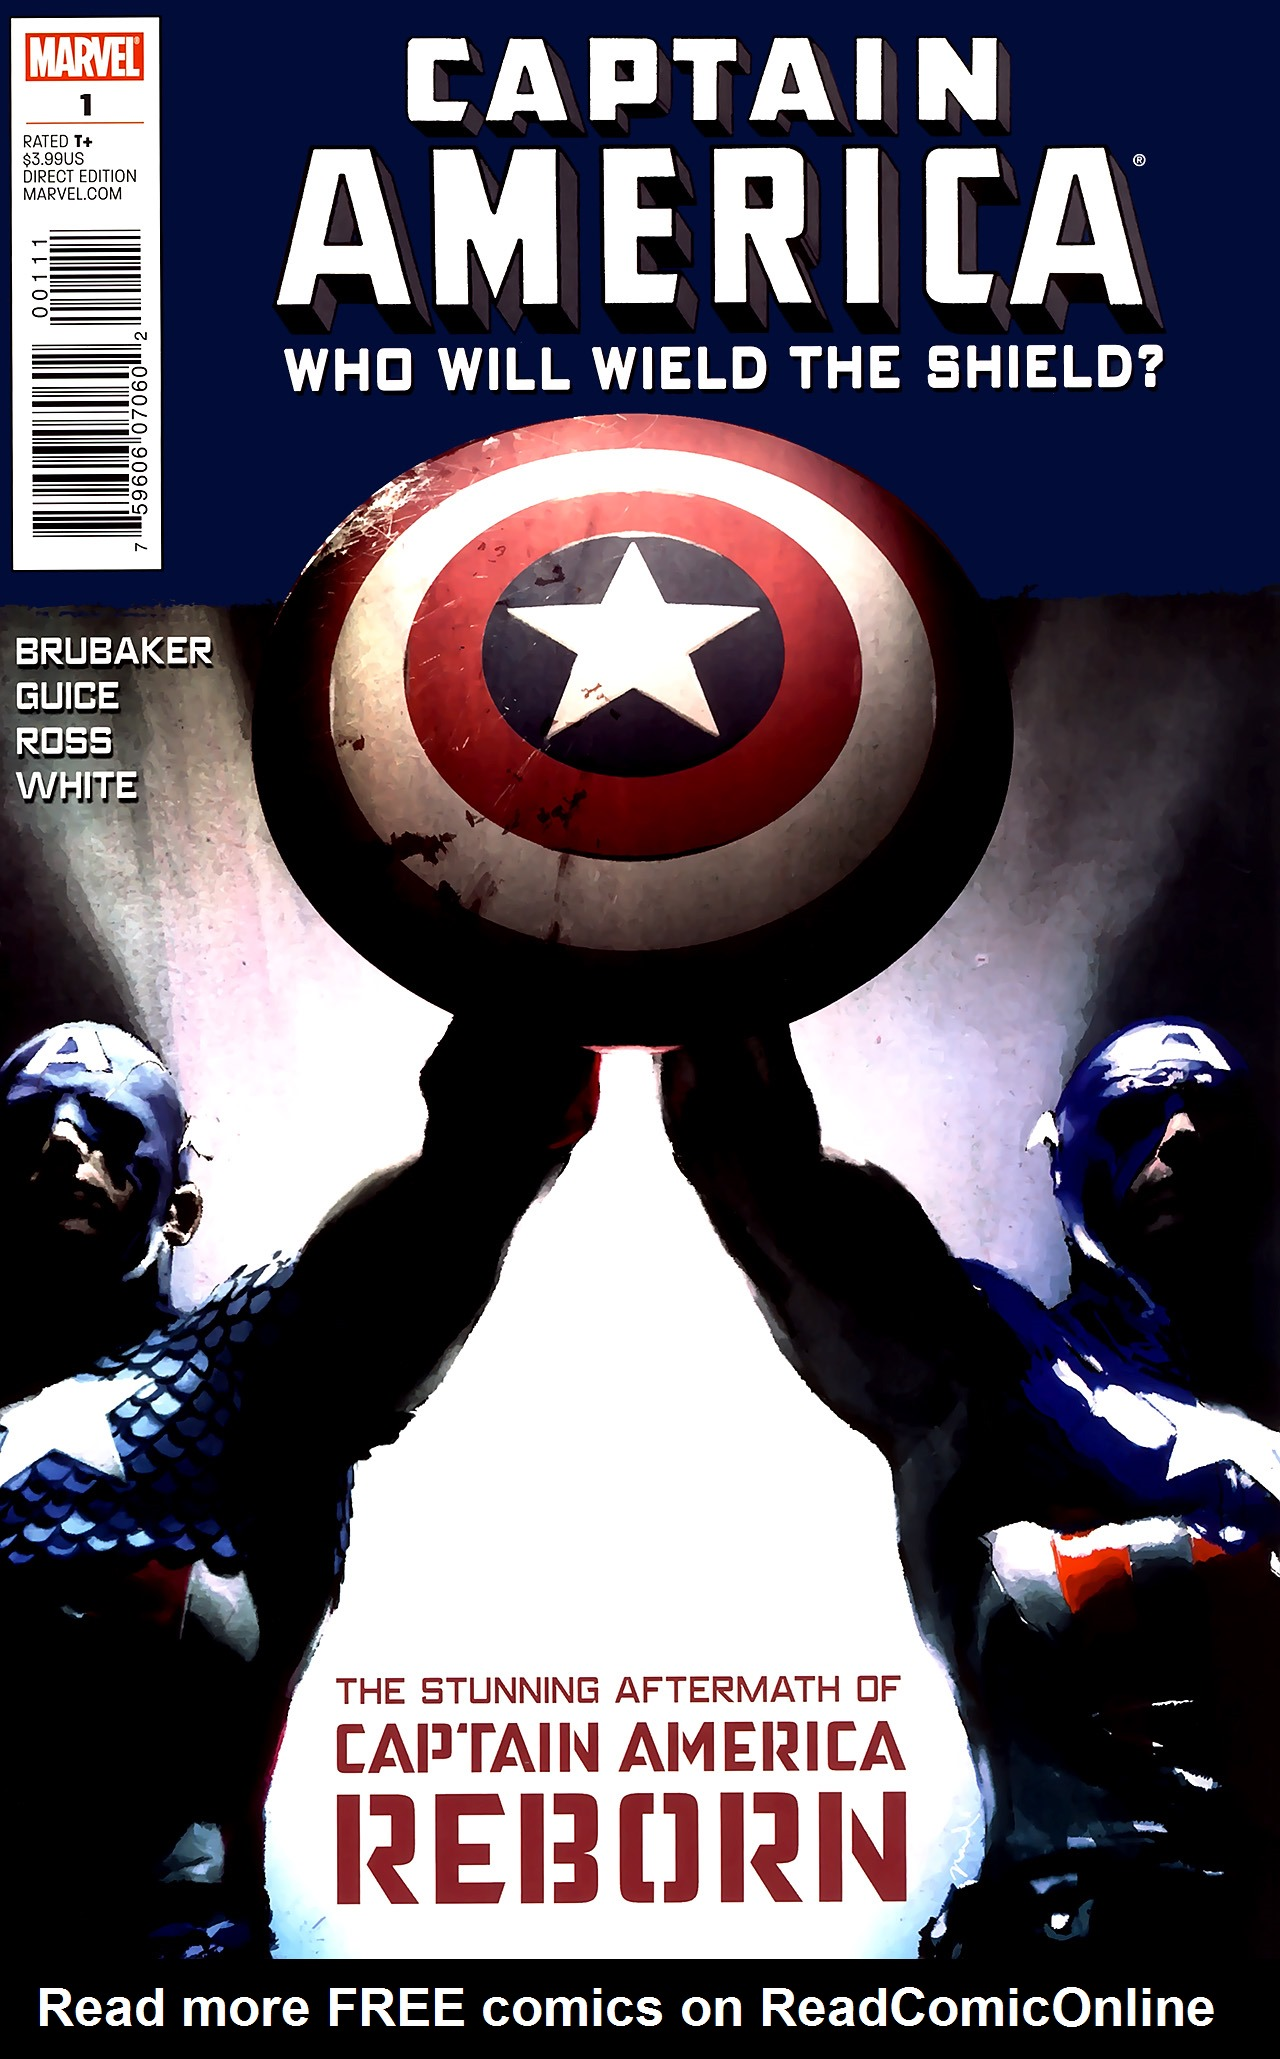 Captain America Reborn: Who Will Wield the Shield? Full Page 1